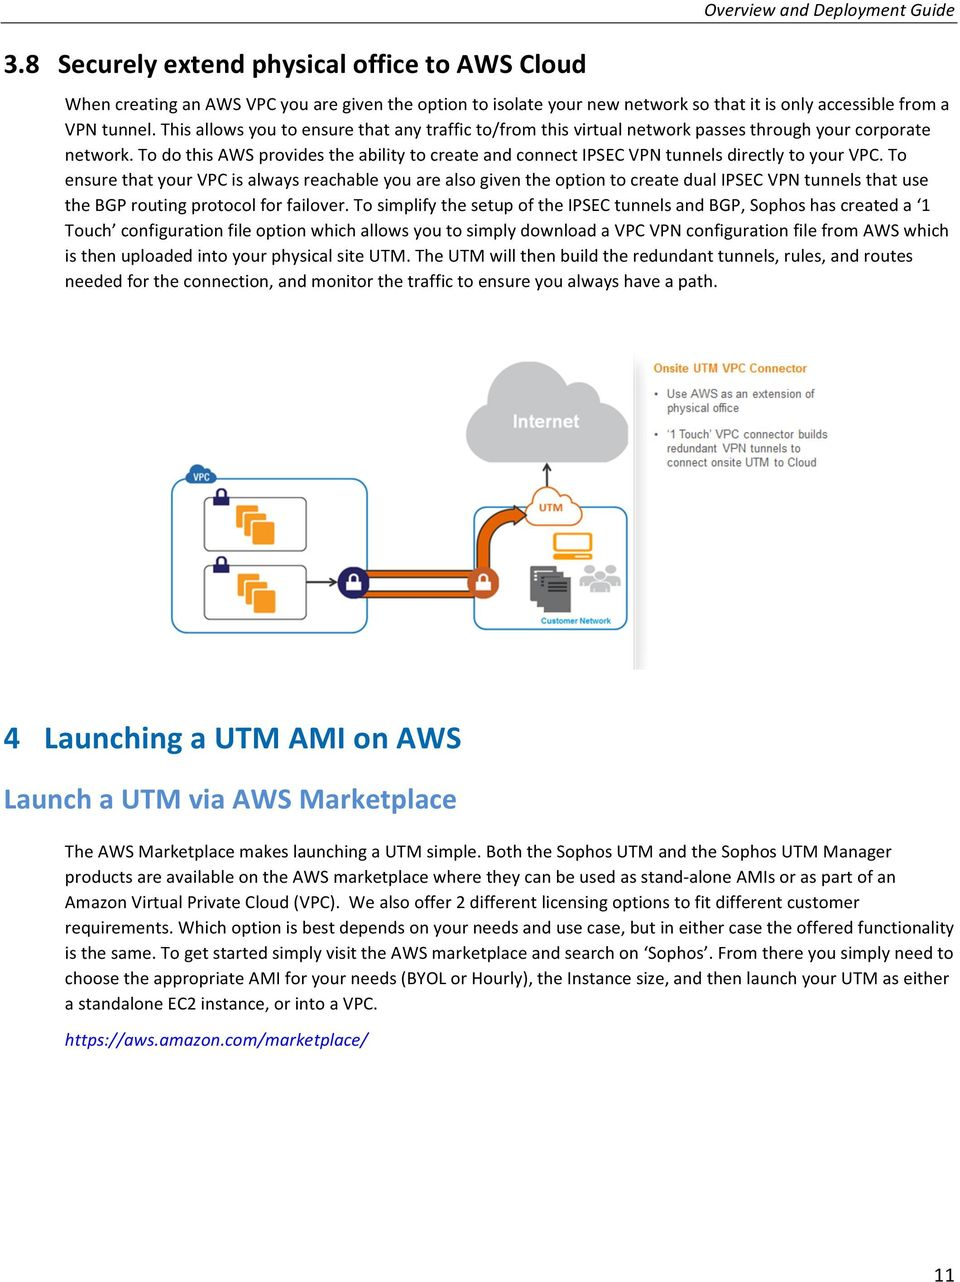 Overview and Deployment Guide  Sophos UTM on AWS - PDF